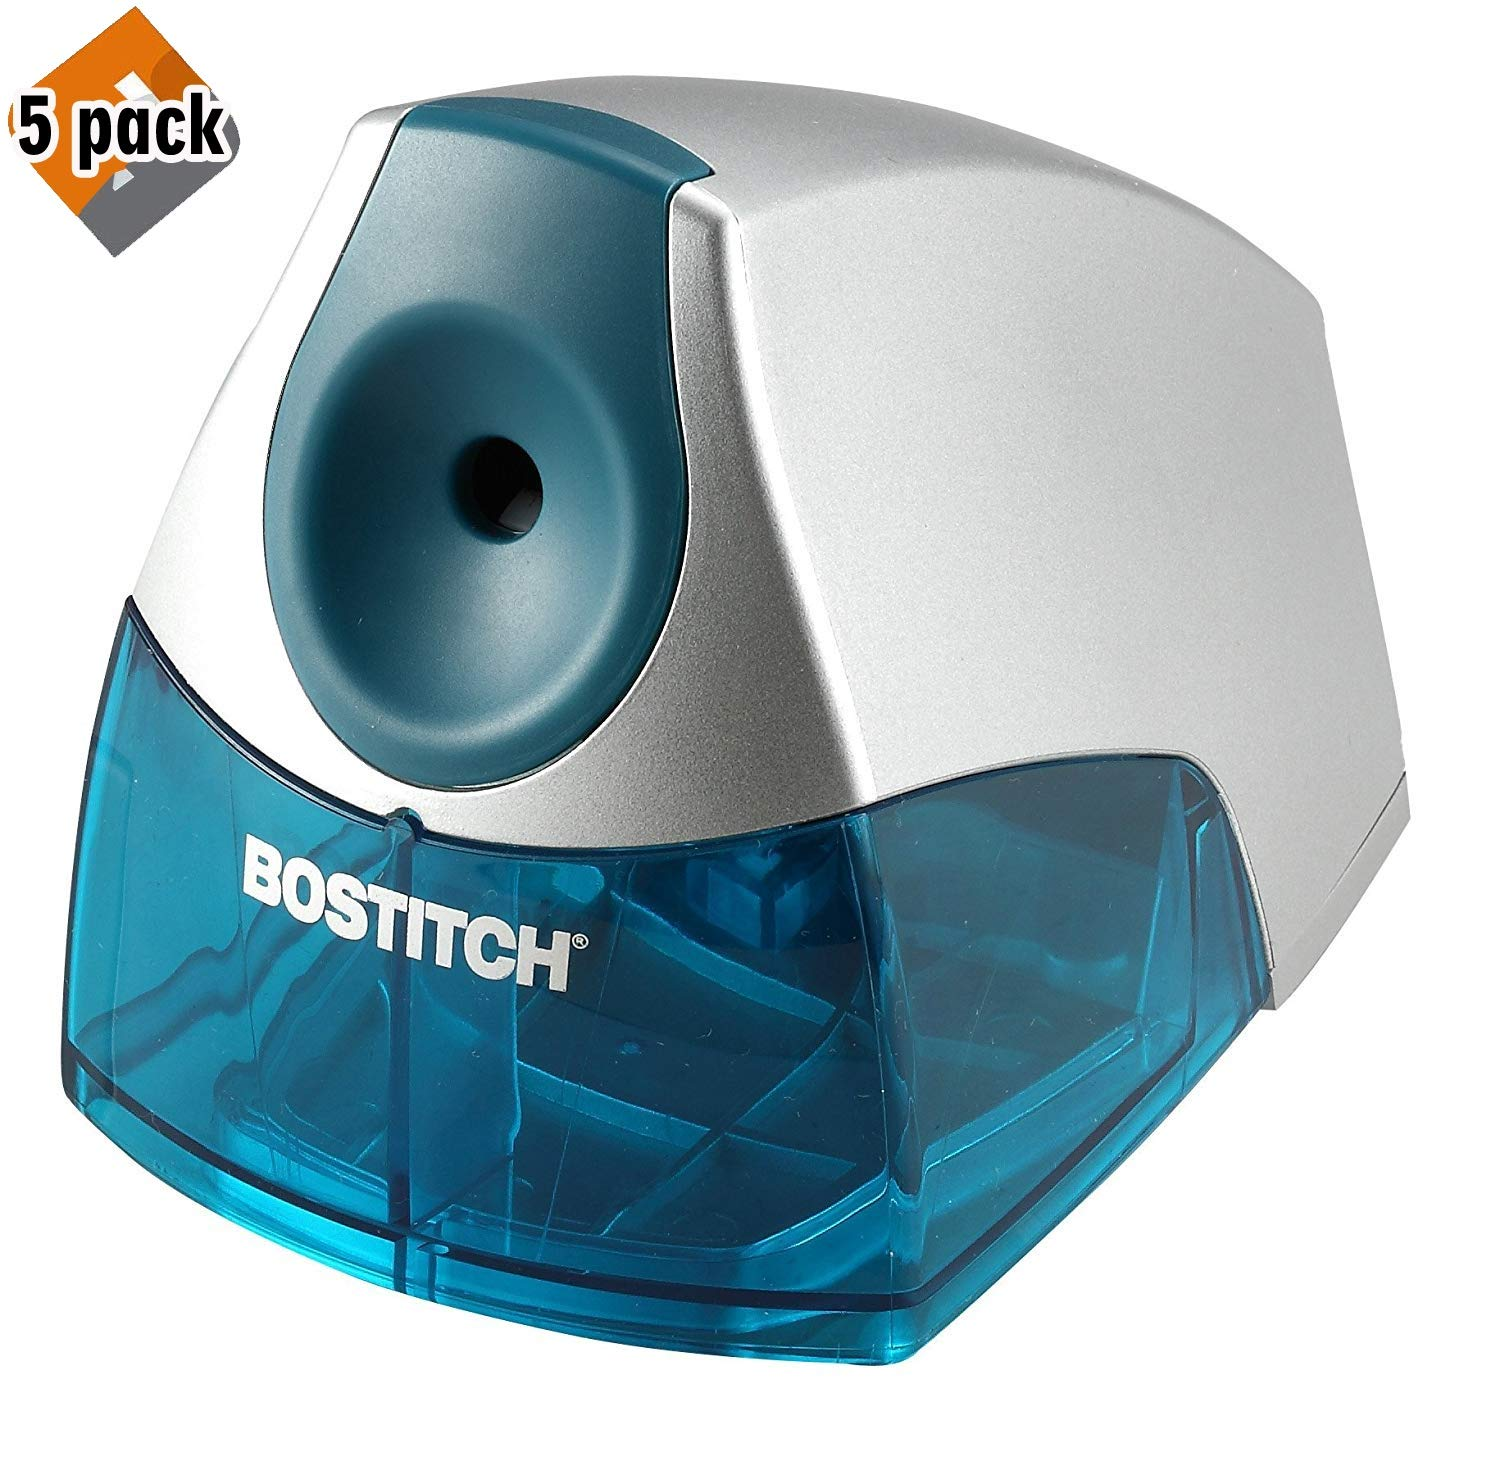 Bostitch Personal Electric Pencil Sharpener, Blue (EPS4-BLUE) - 5 Pack